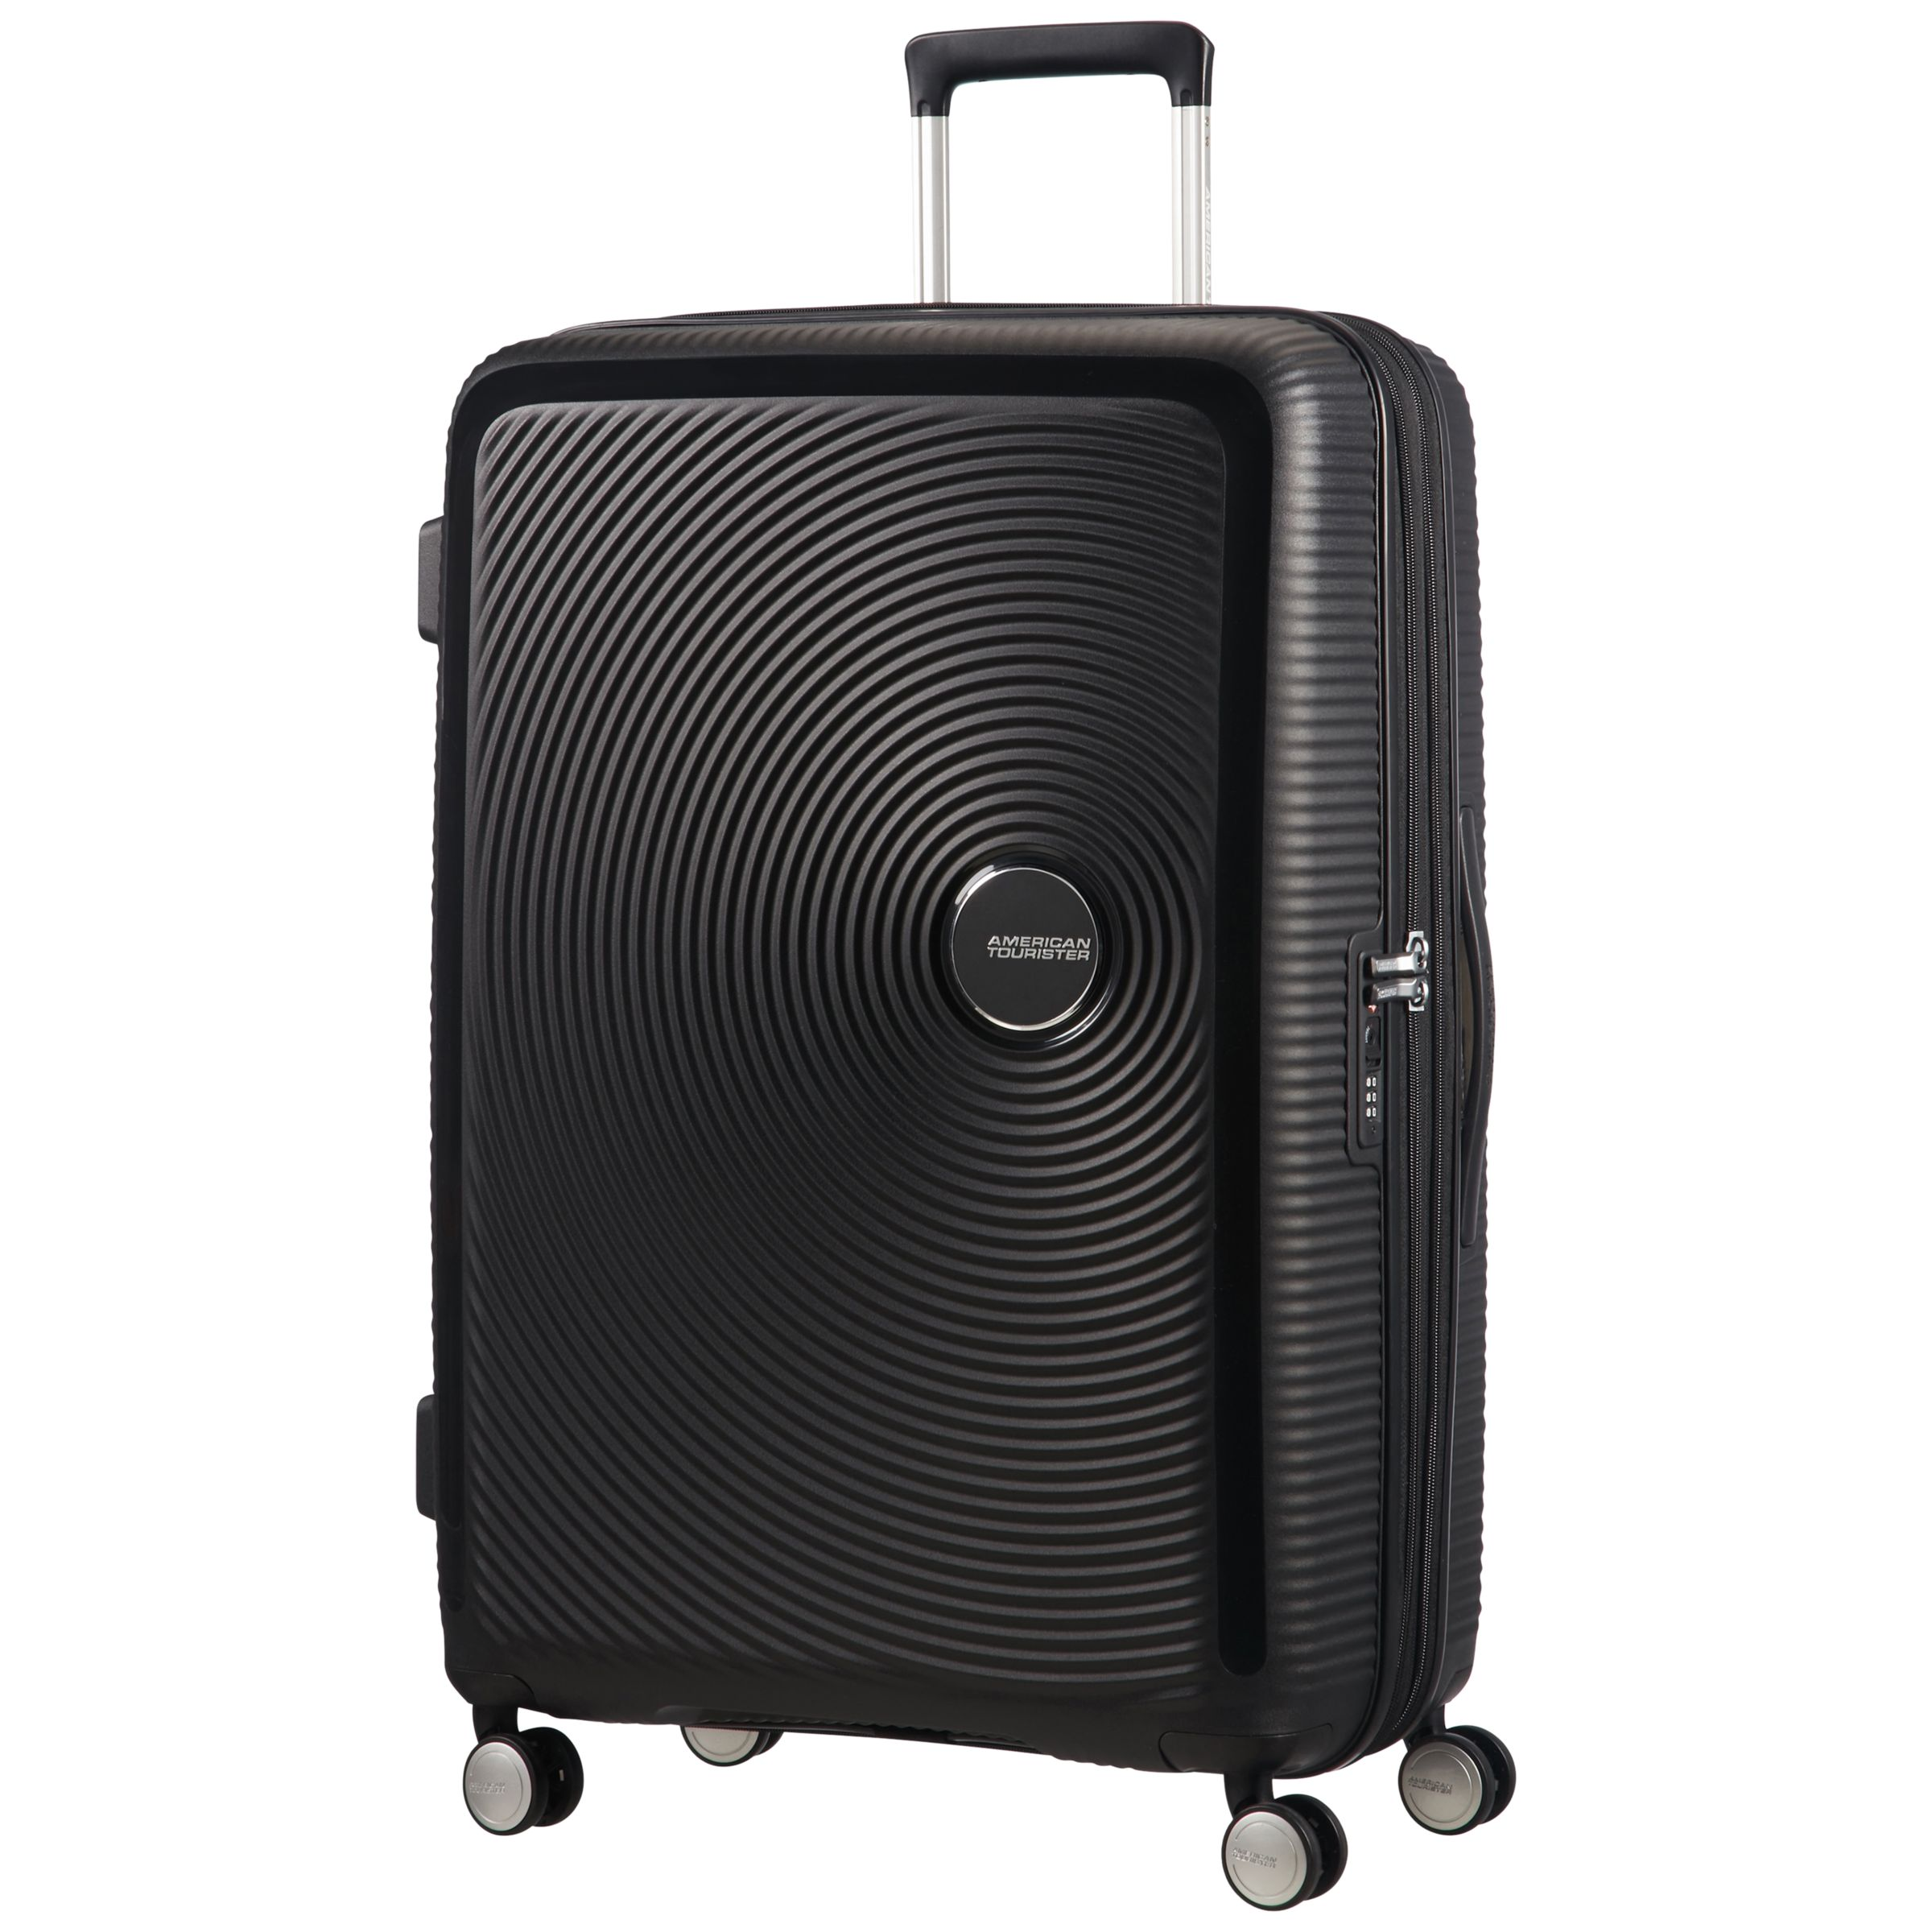 American Tourister American Tourister Soundbox 4-Spinner Wheel 77cm Large Suitcase